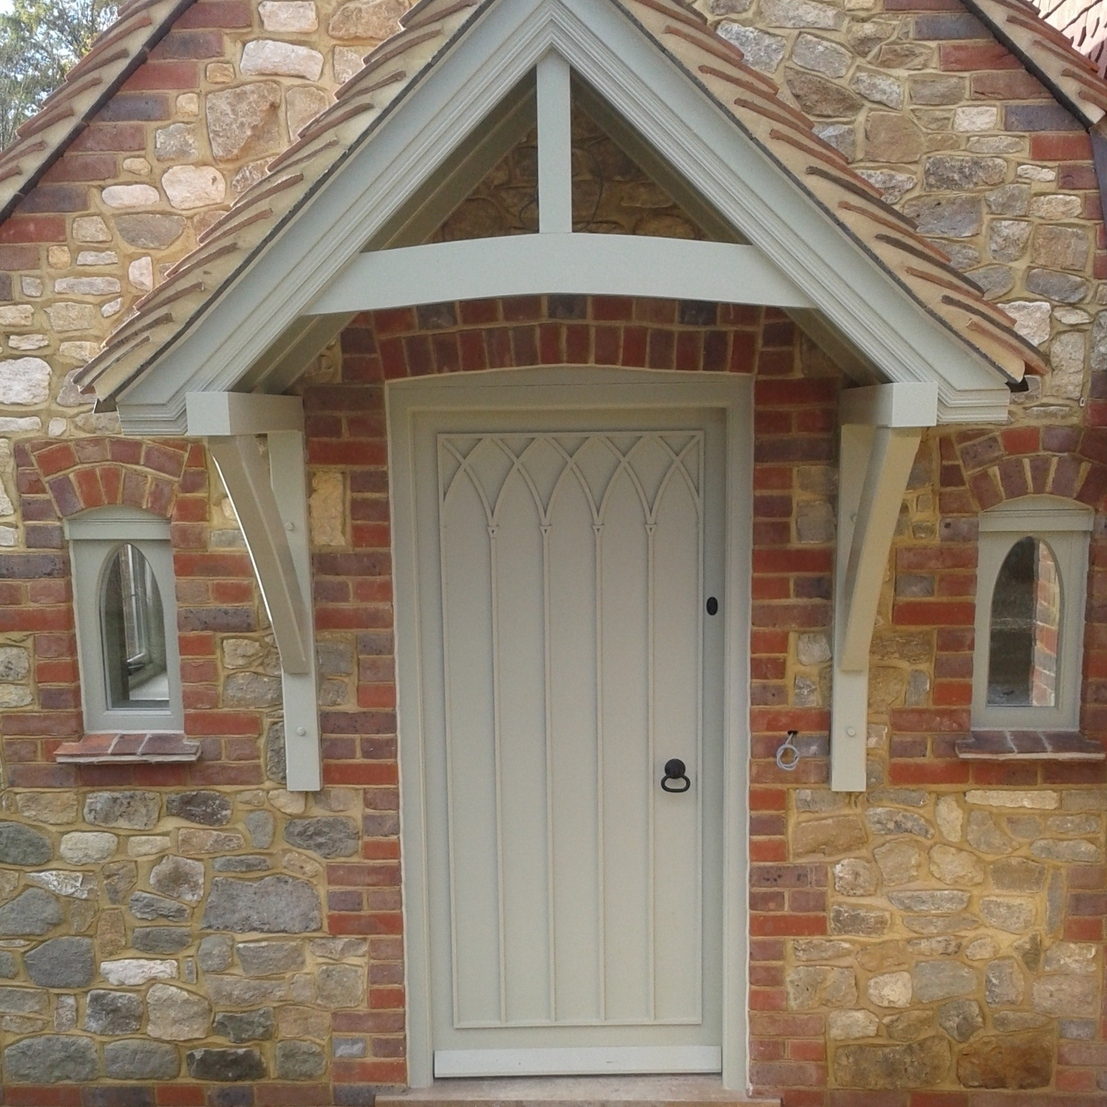 Bespoke joinery windows and doors